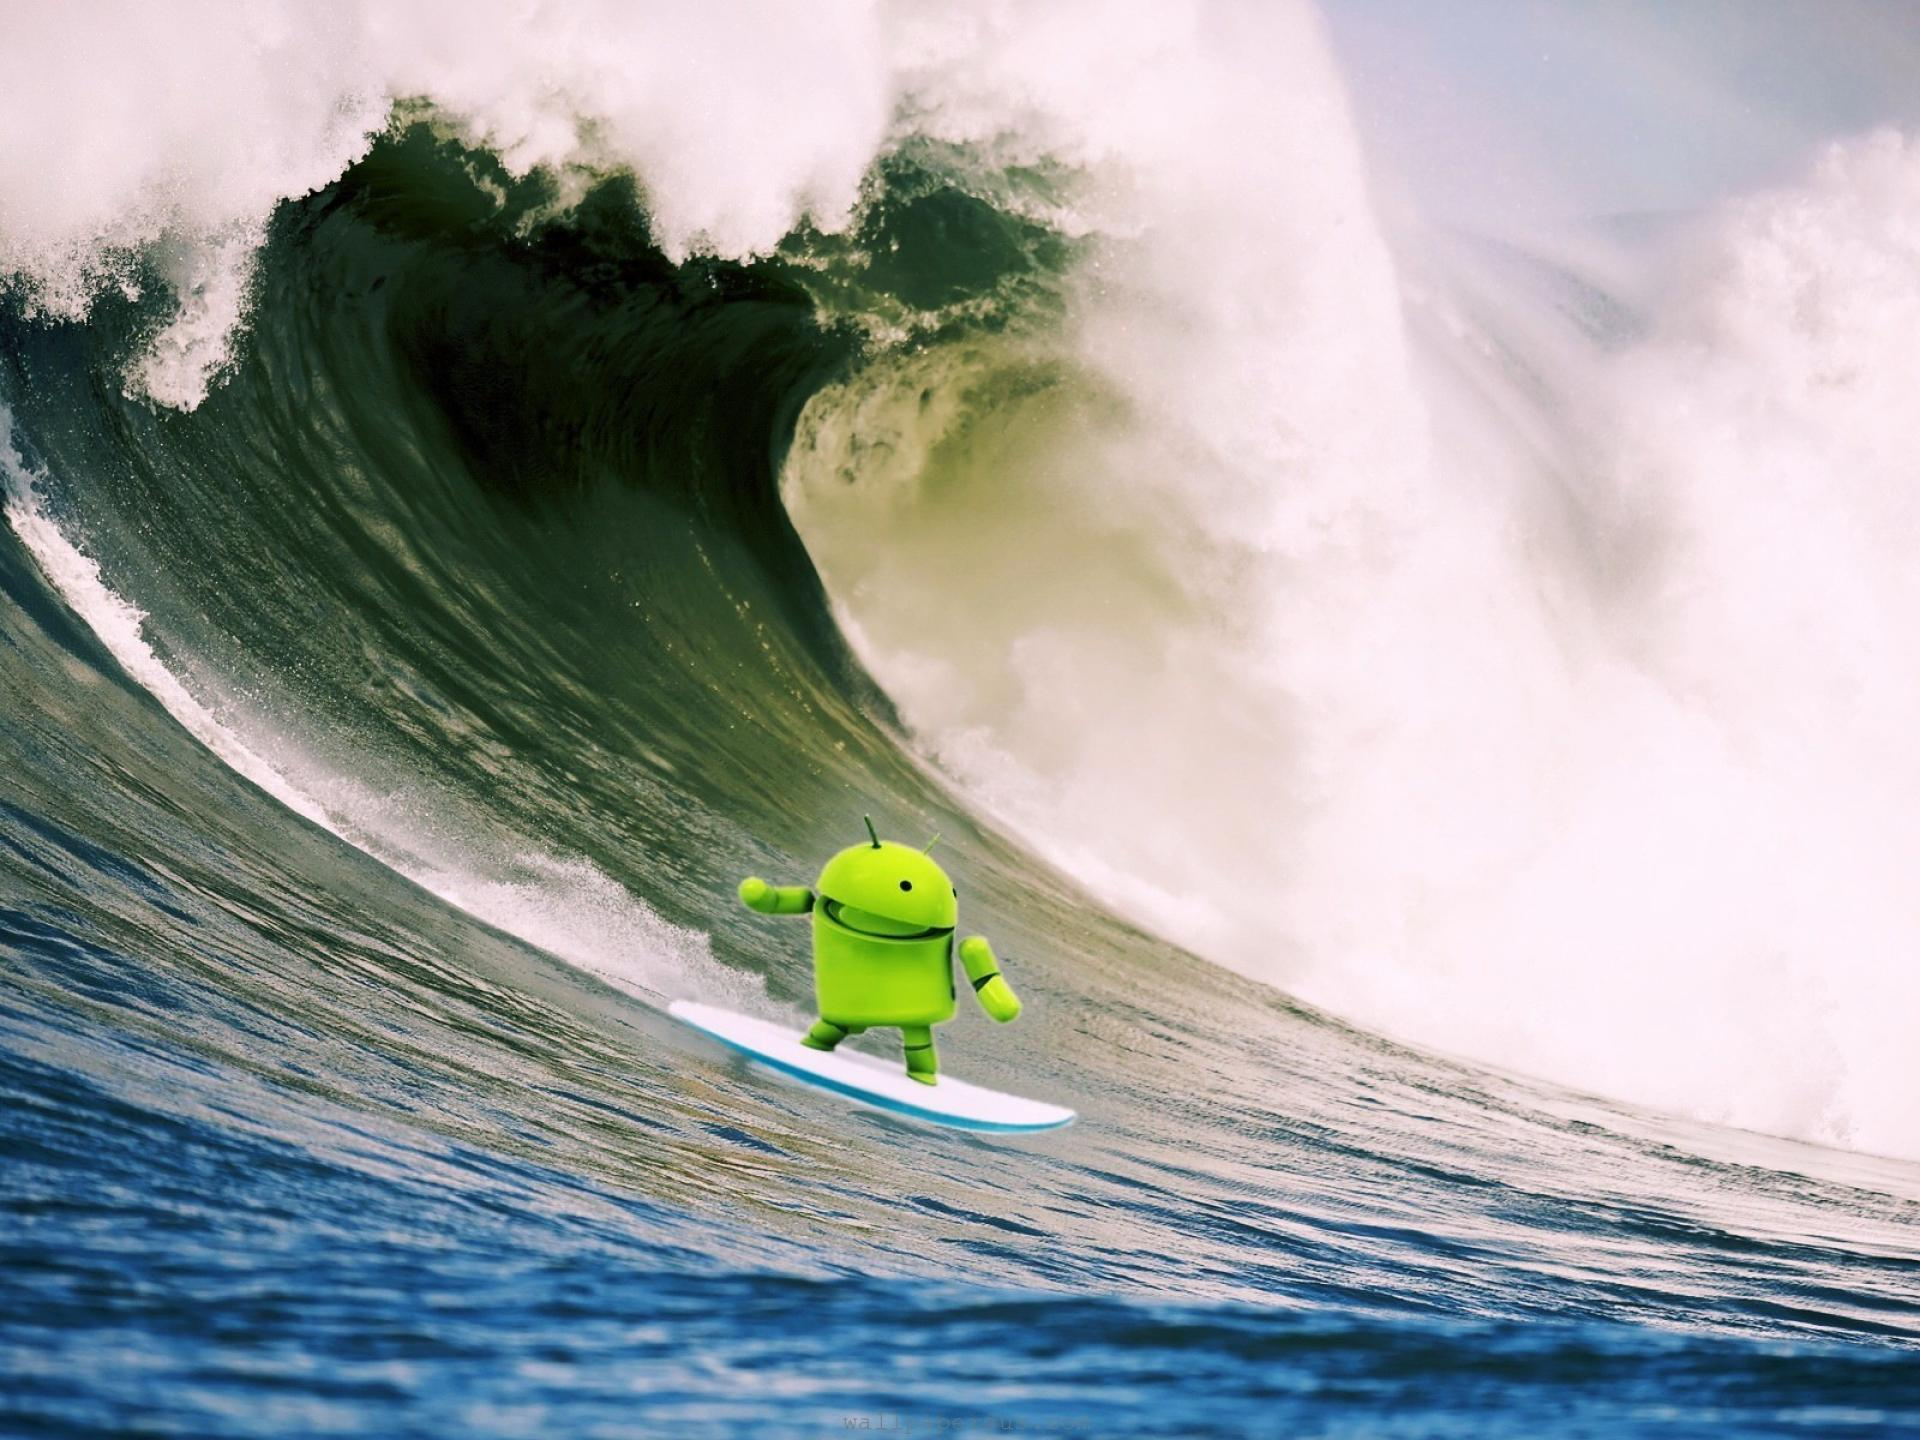 Surfing Computer Wallpapers Sea Waves Android Surfing Computer 1920x1440